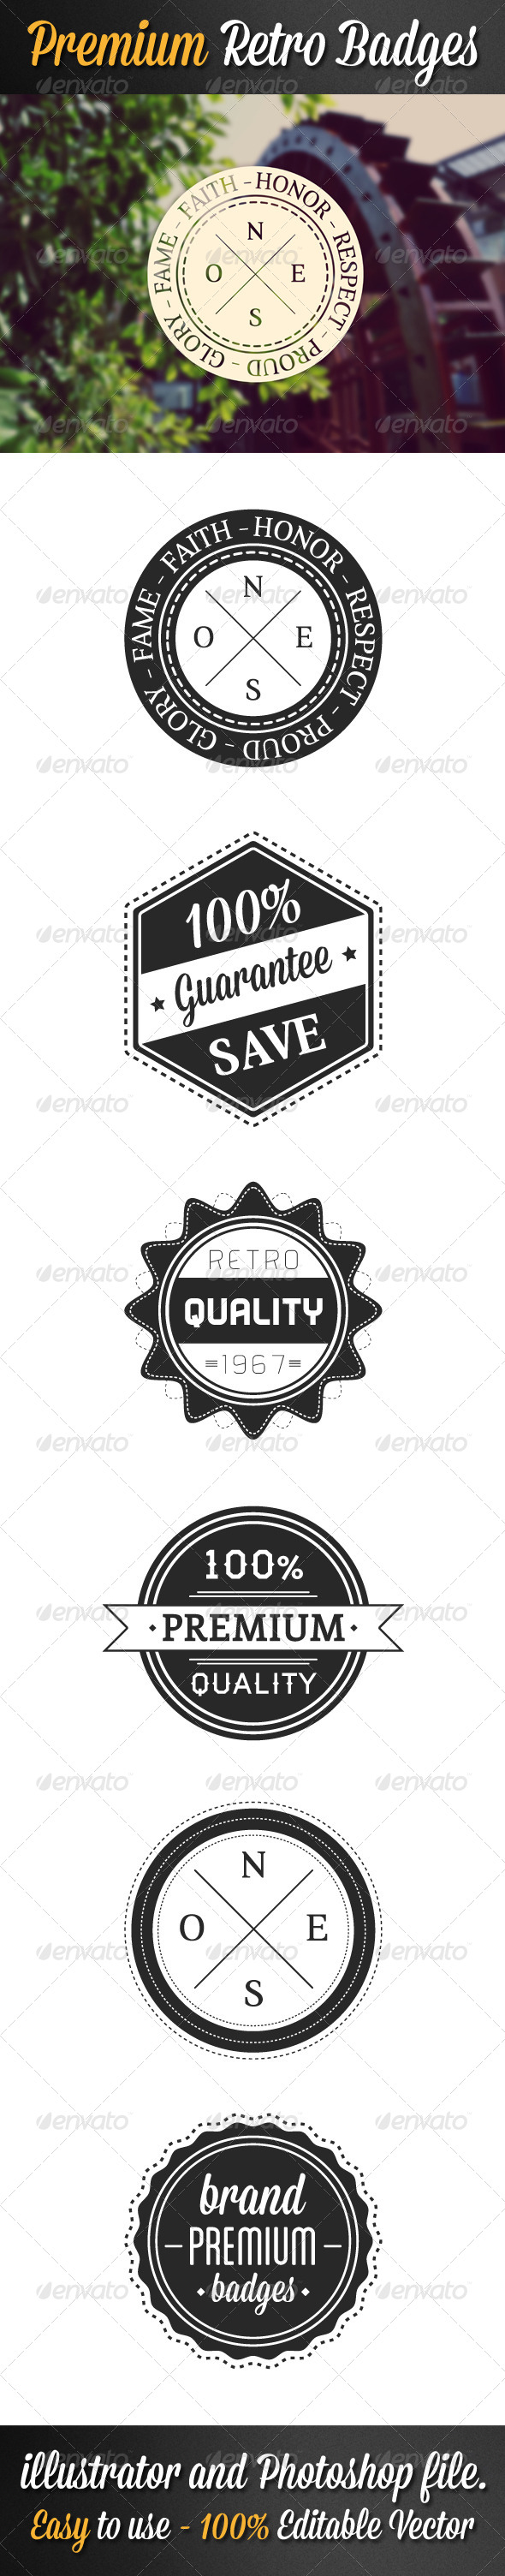 GraphicRiver Premium Retro Badges 5458776